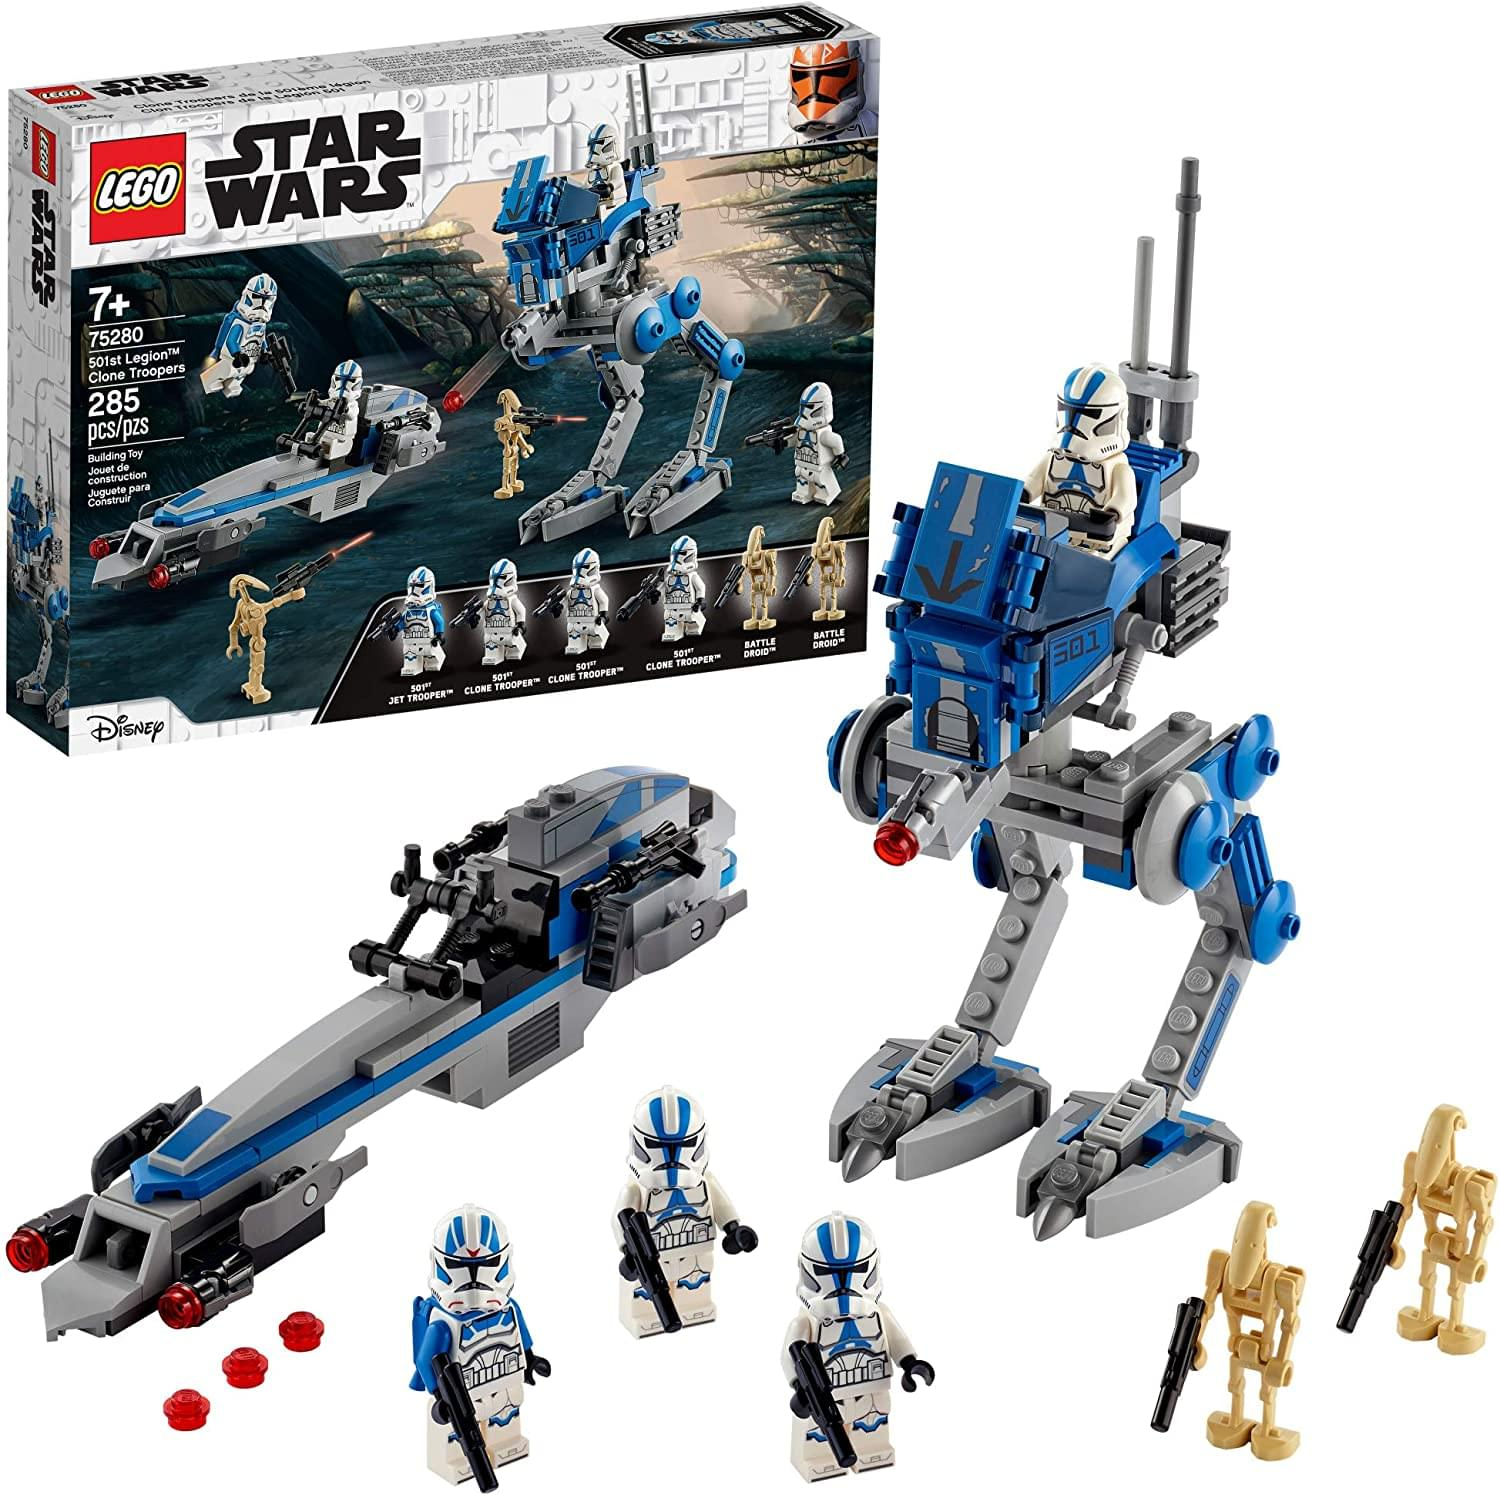 LEGO Star Wars 501st Legion Clone Troopers 75280 | 285 Piece Building Kit